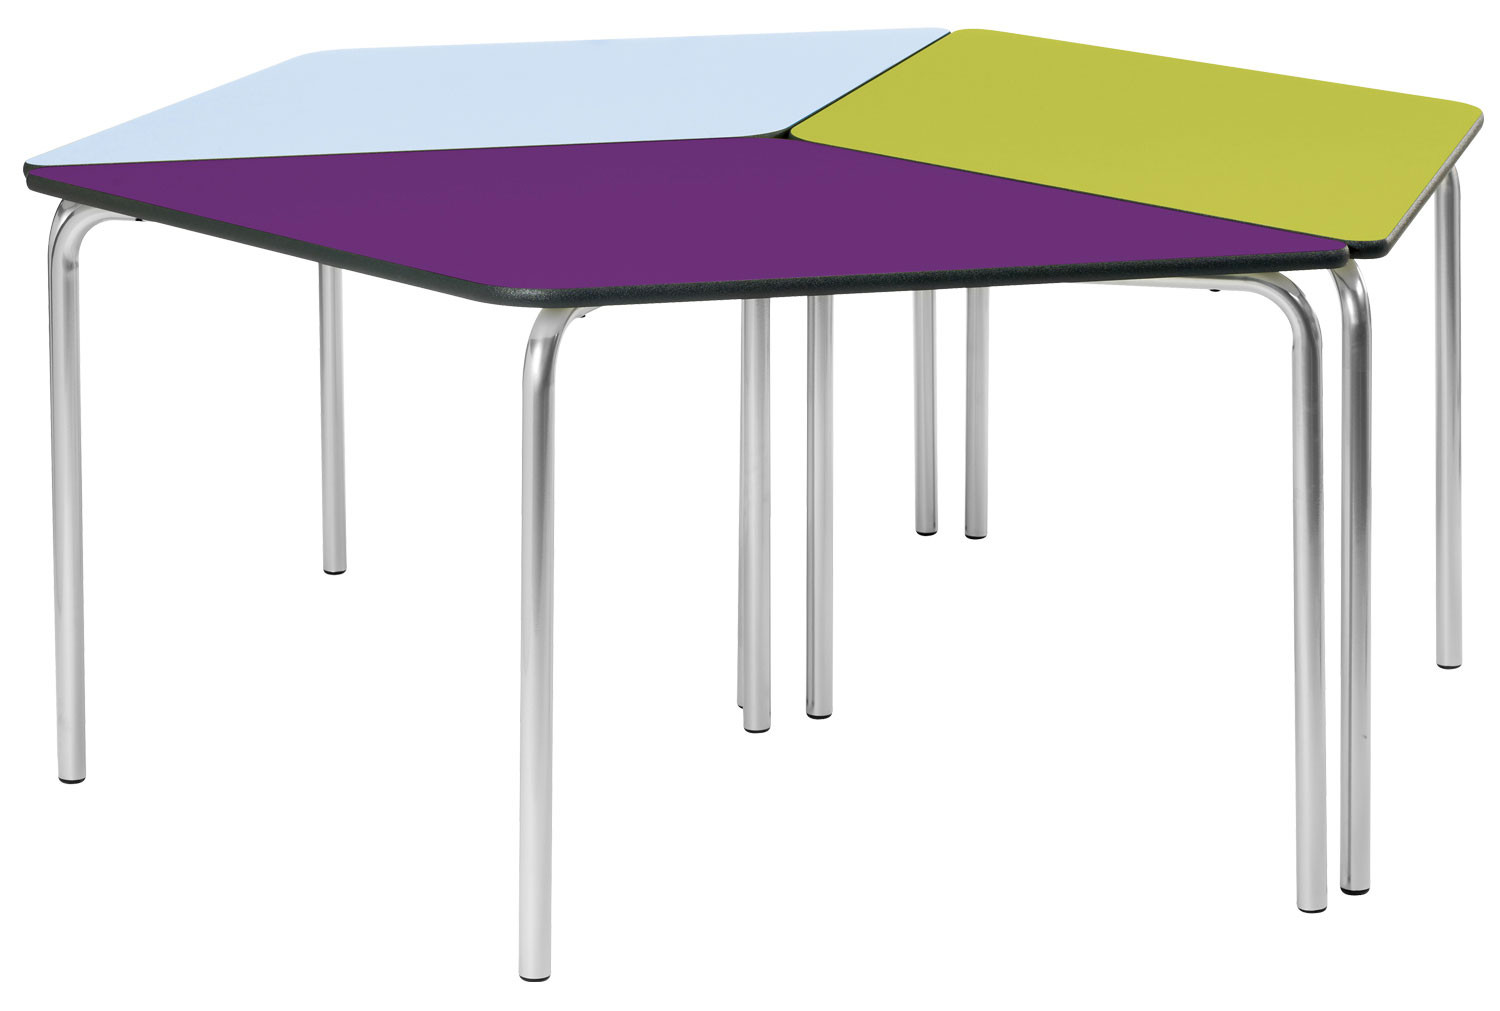 Equation Jewel Classroom Tables 3-4 Years